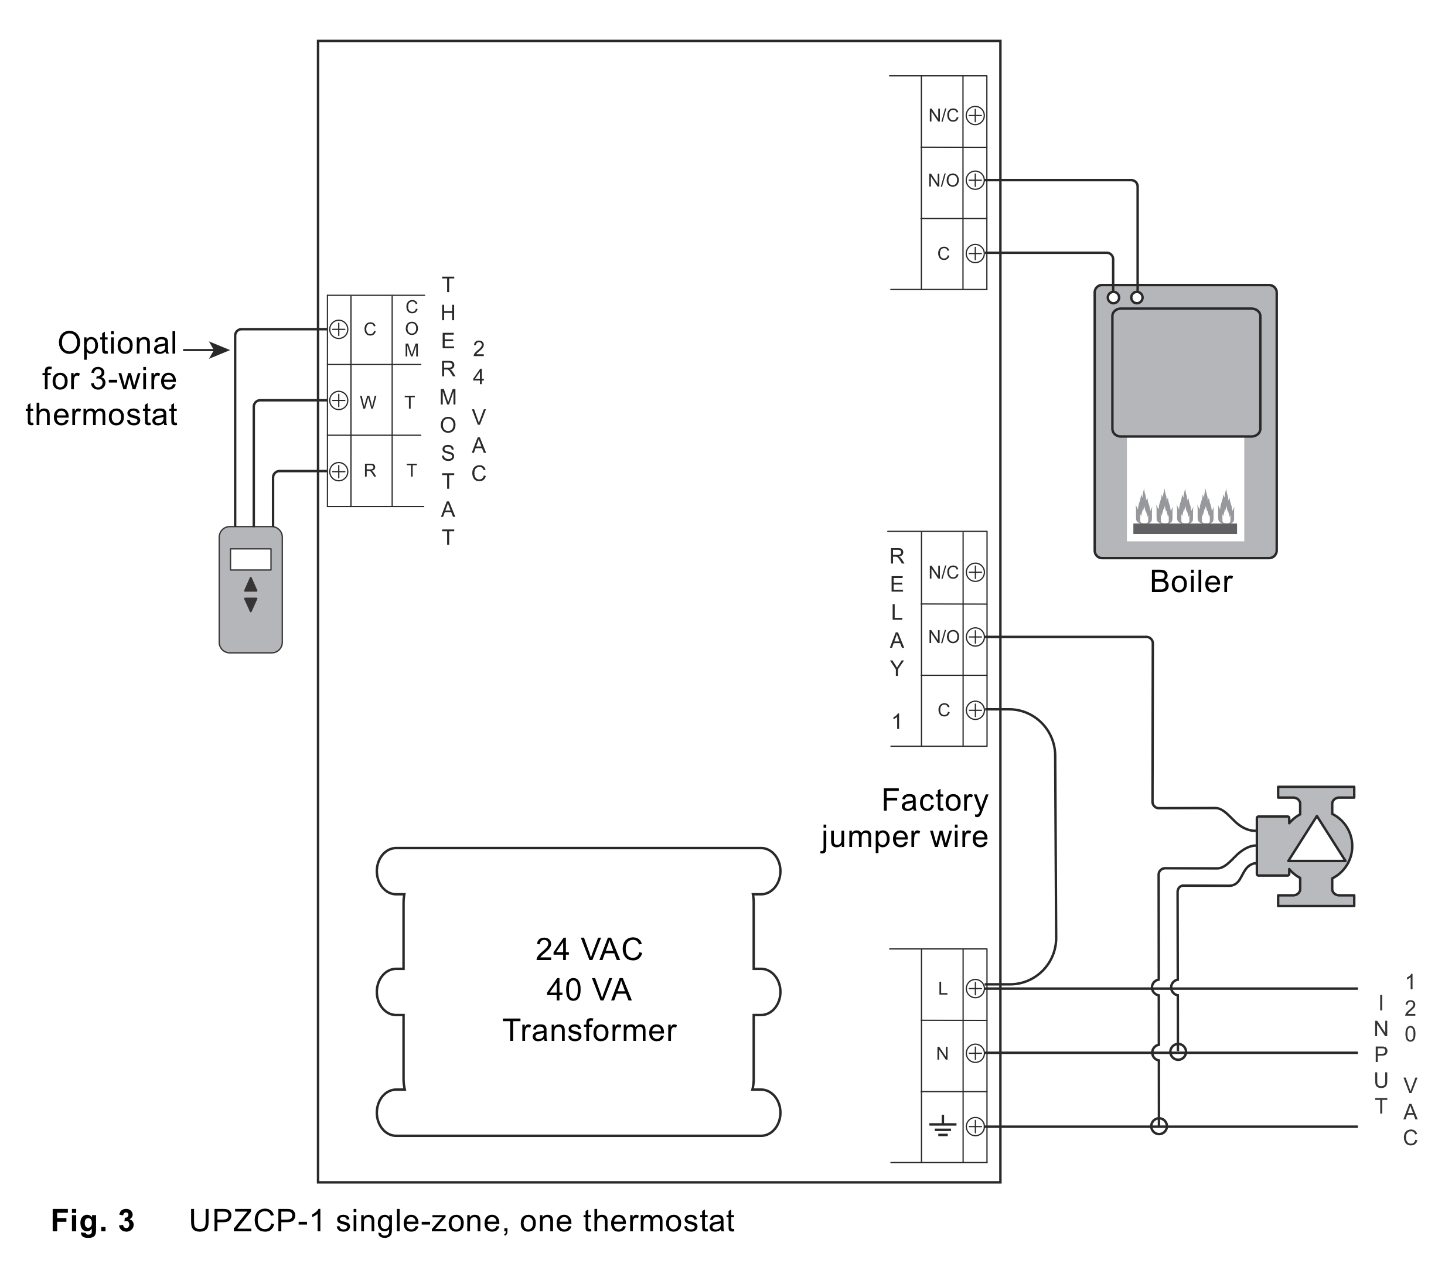 taco 007 f5 wiring diagram Download-taco 007 f5 wiring diagram Collection How Can I Add Additional Circulator Relay To Existing 20-s